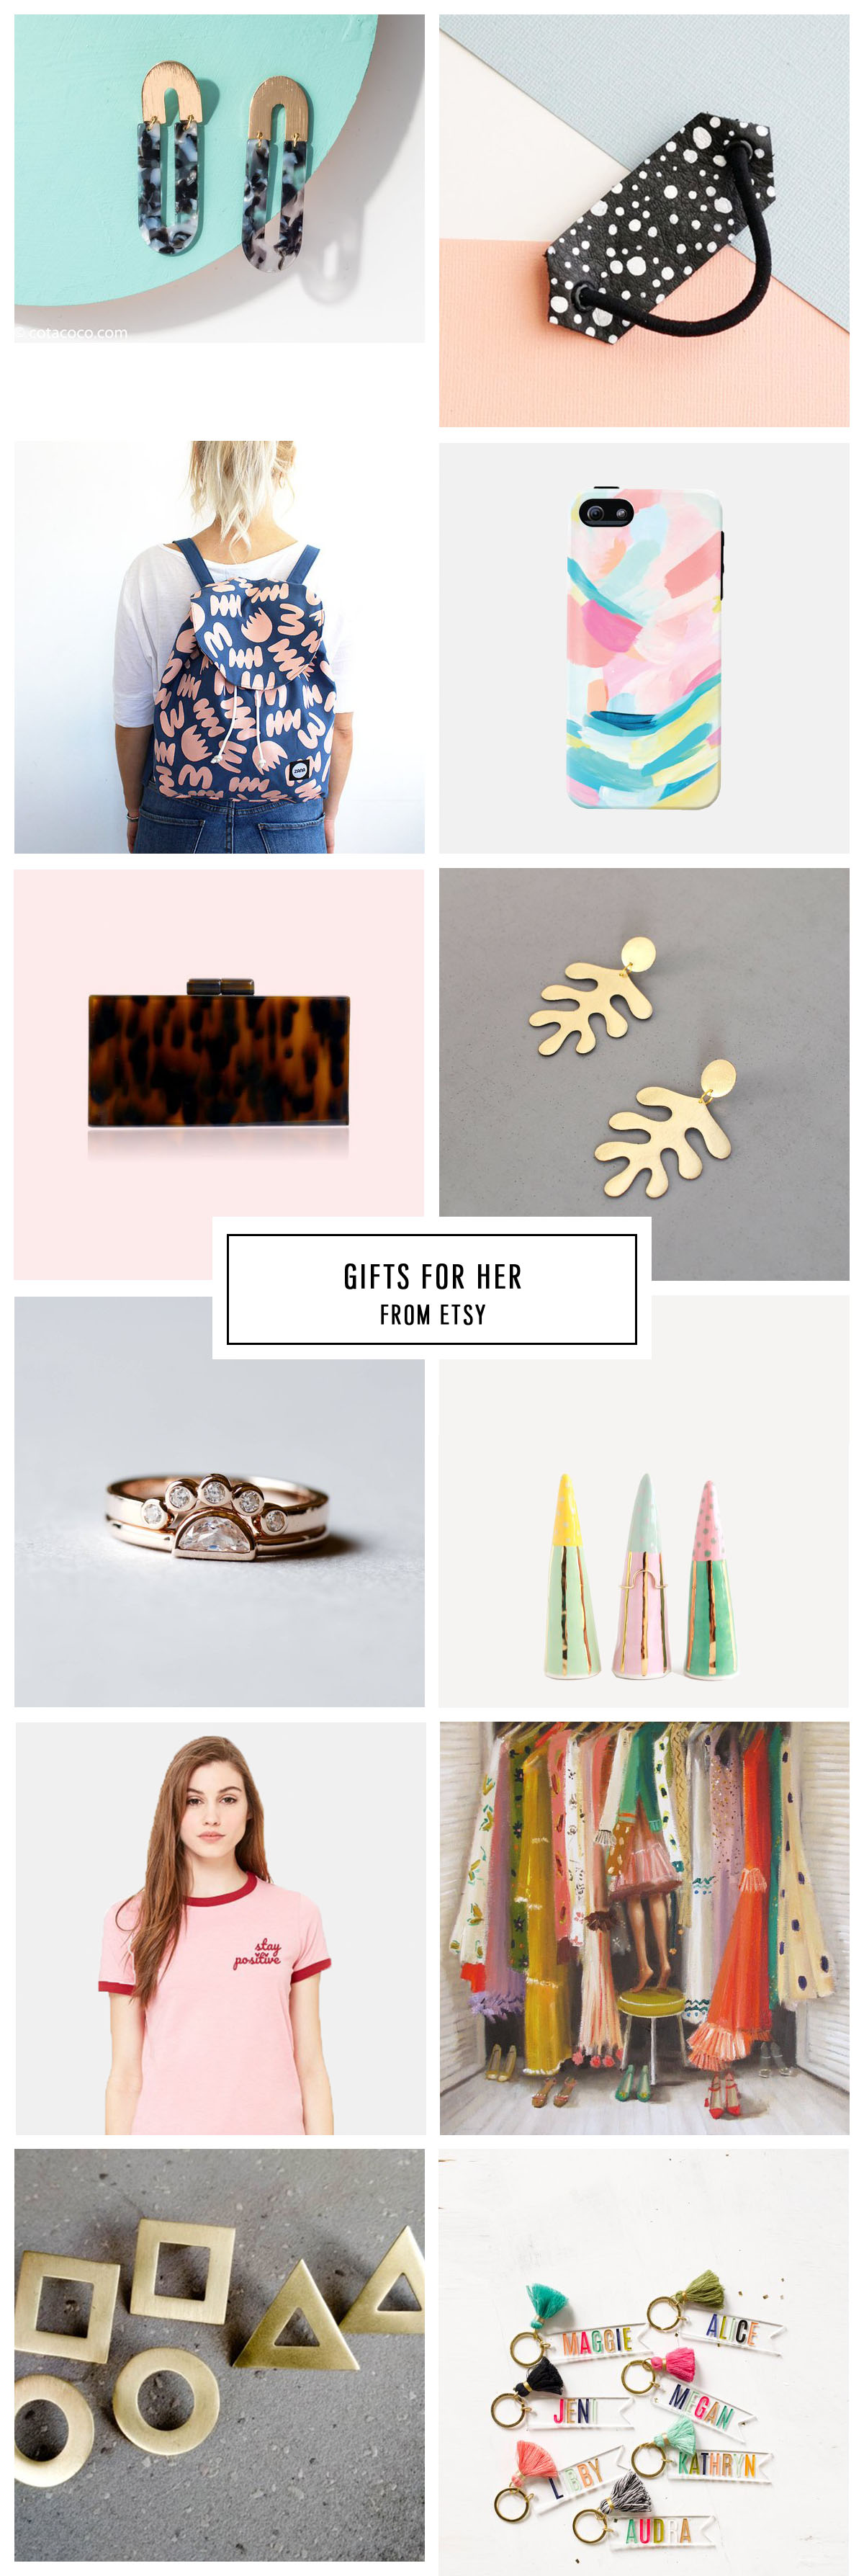 COMPLETE ETSY GIFT GUIDE FOR HER UNDER $75 by Houston lifestyle blogger Ashley Rose of Sugar and Cloth -- #giftguide #christmas #entertaining #holidaygifts #presents